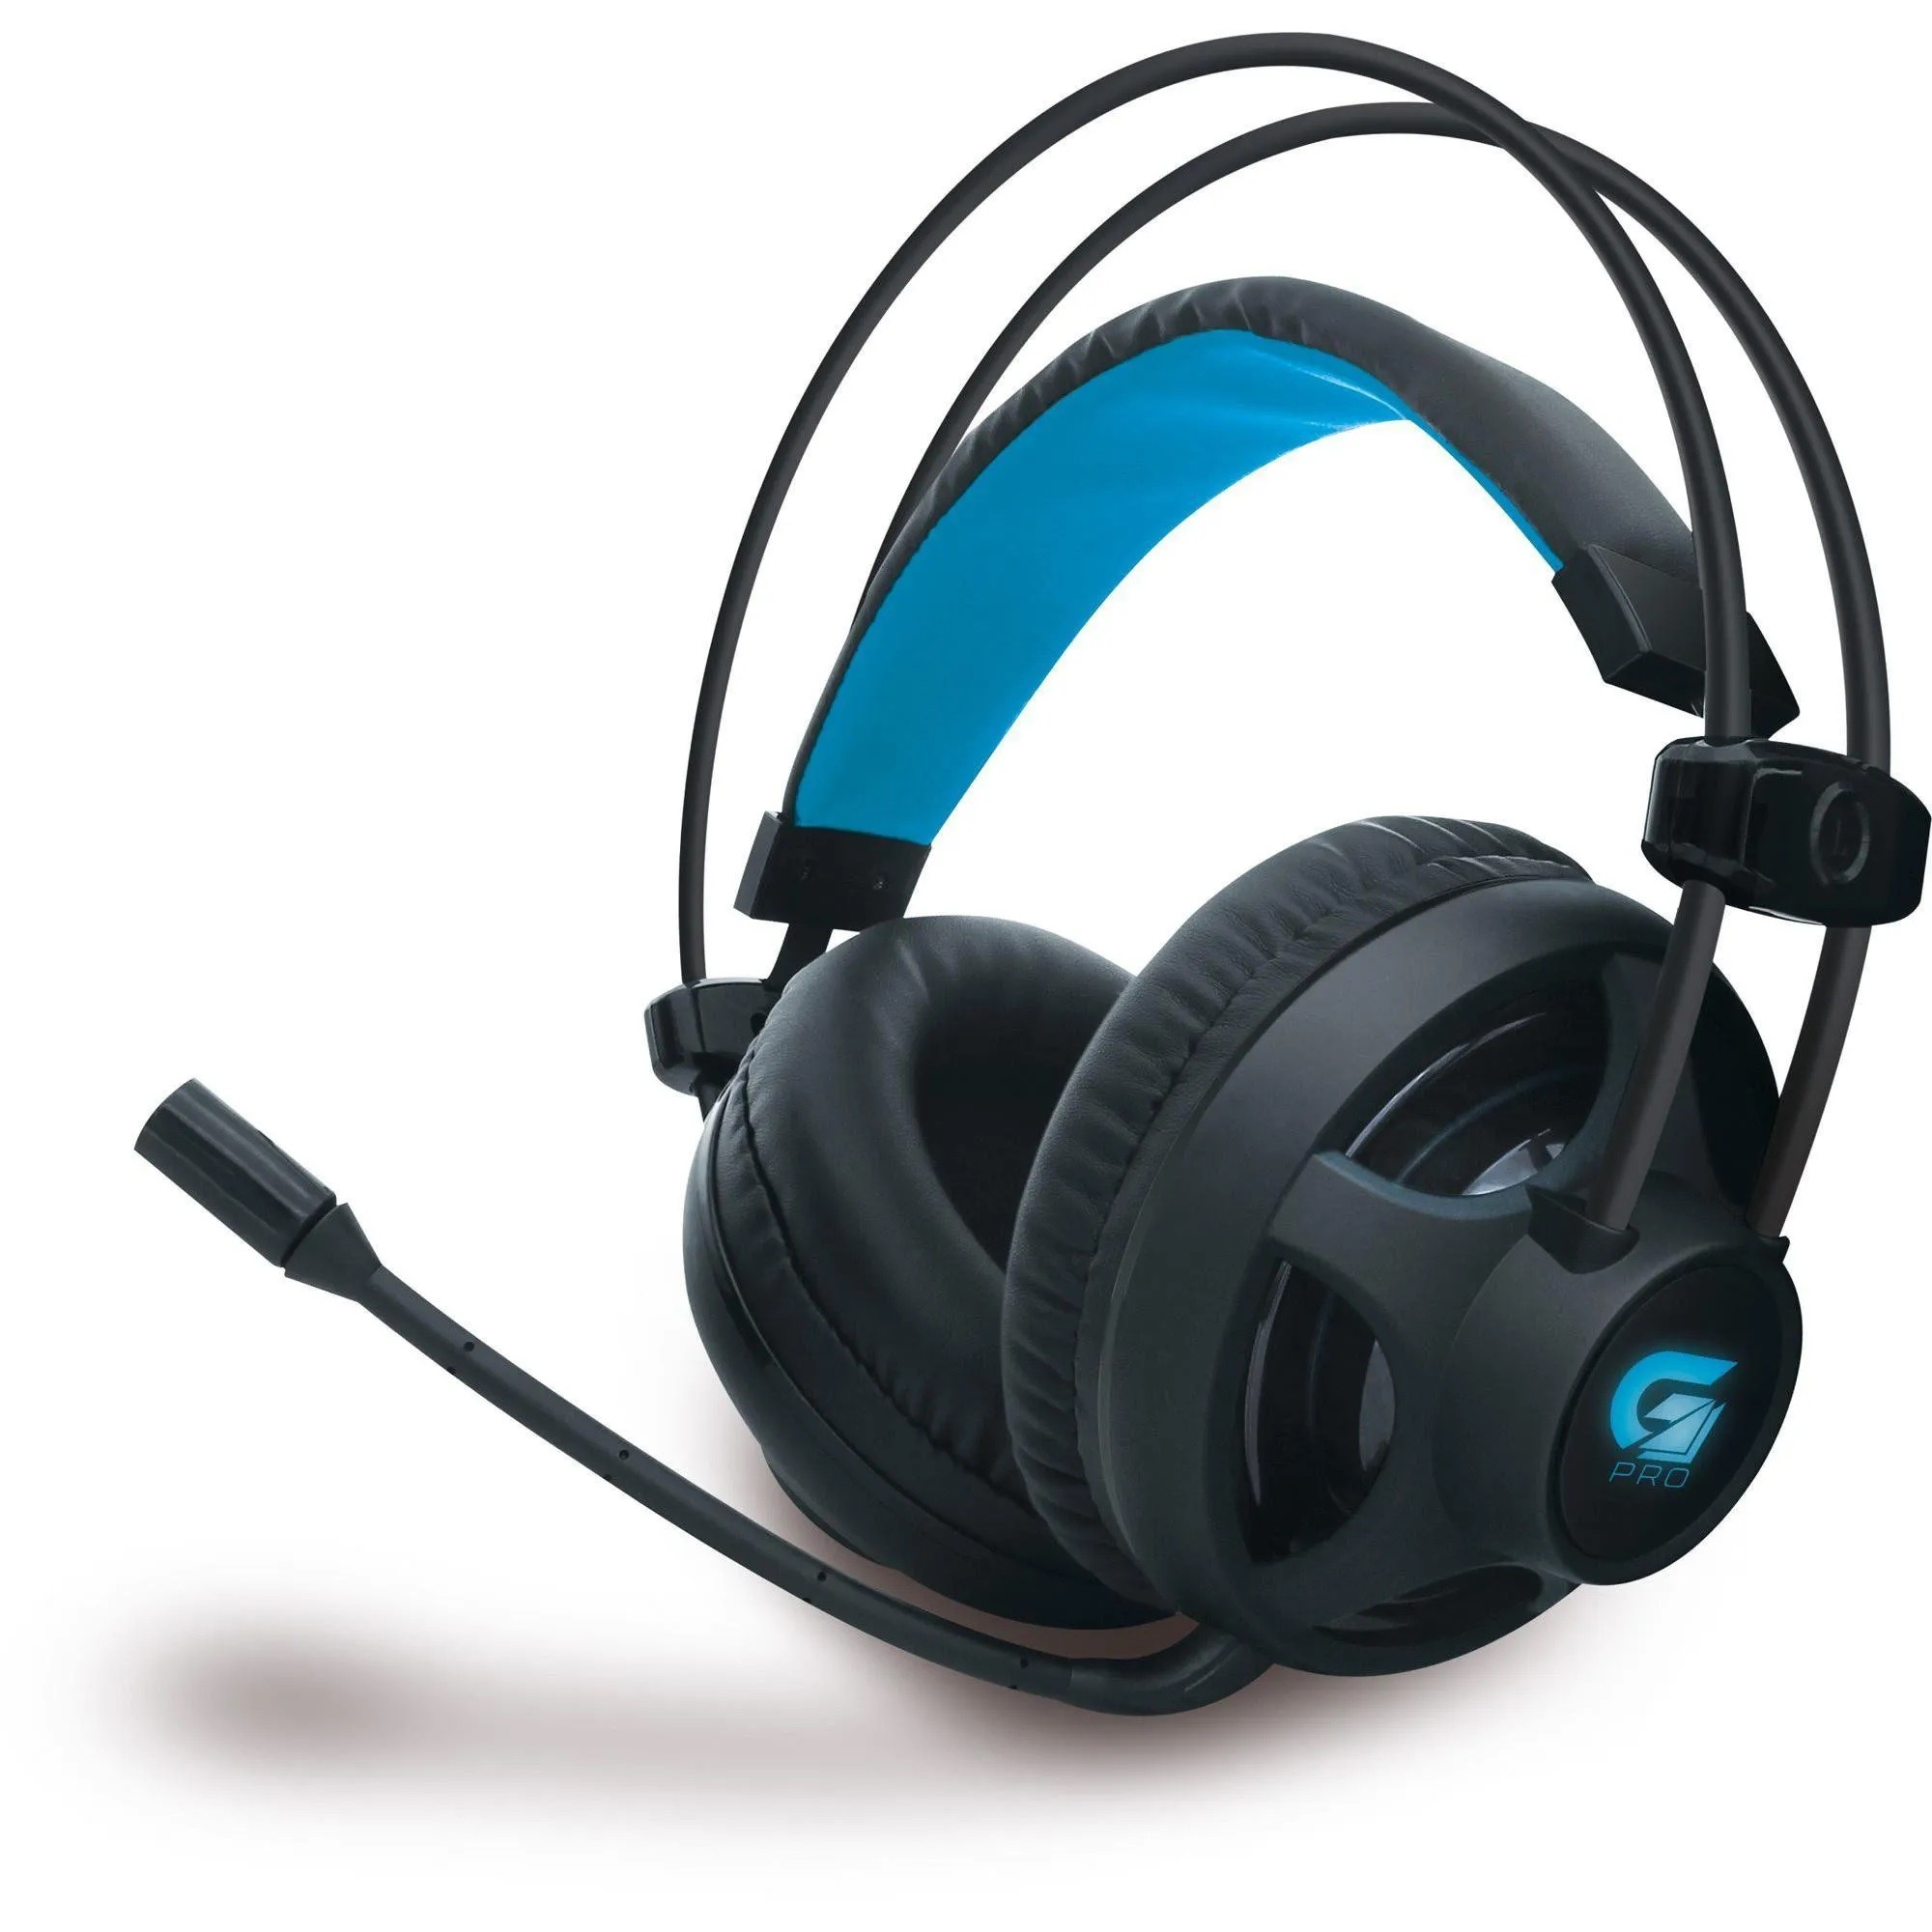 Kit Headset Gamer H2 Pro Fortrek + Suporte Headset Blackfire